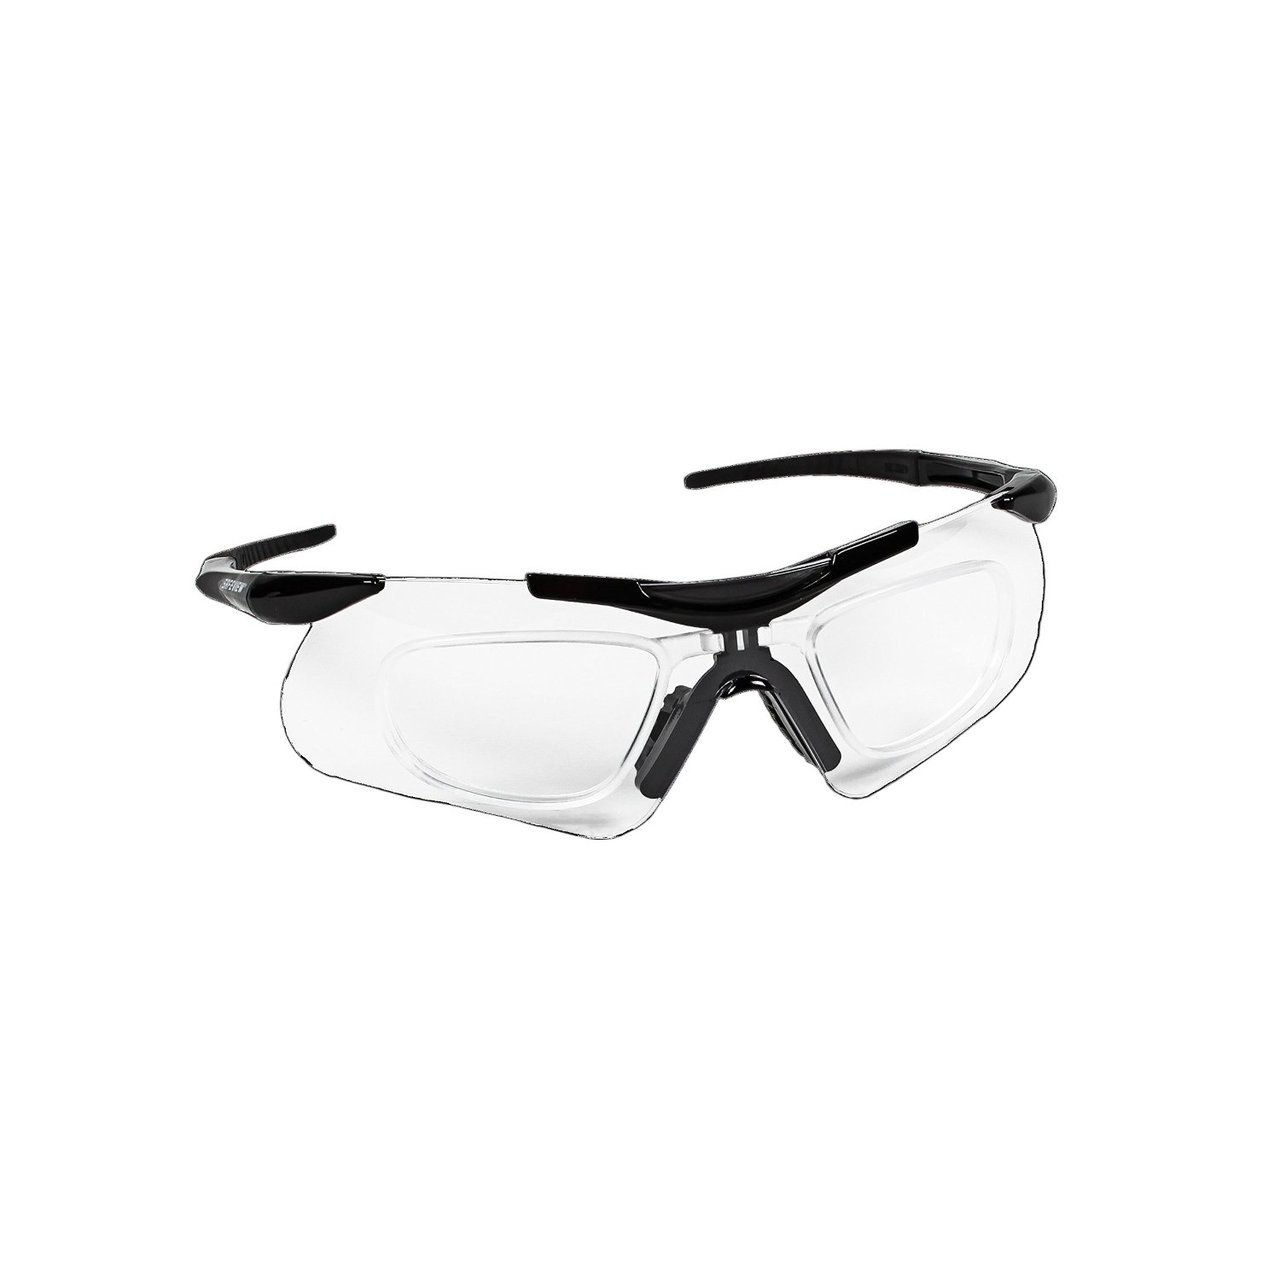 SAFETY GLASSES w/BLACK FRAME & CLEAR LENS